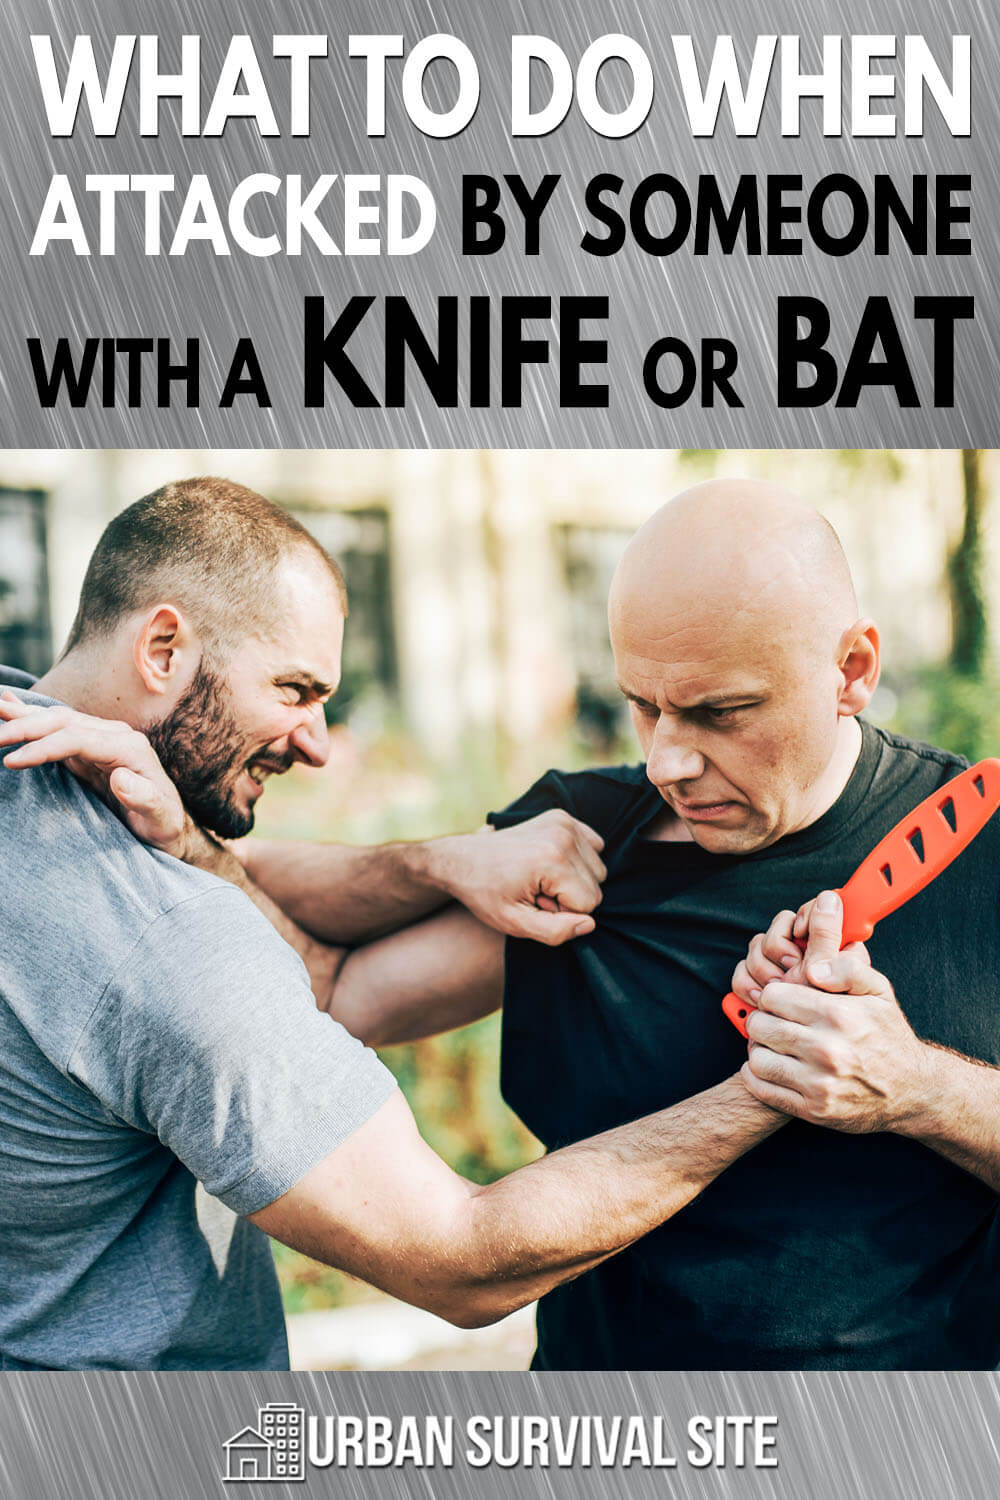 What To Do When Attacked By Someone With A Knife Or Bat